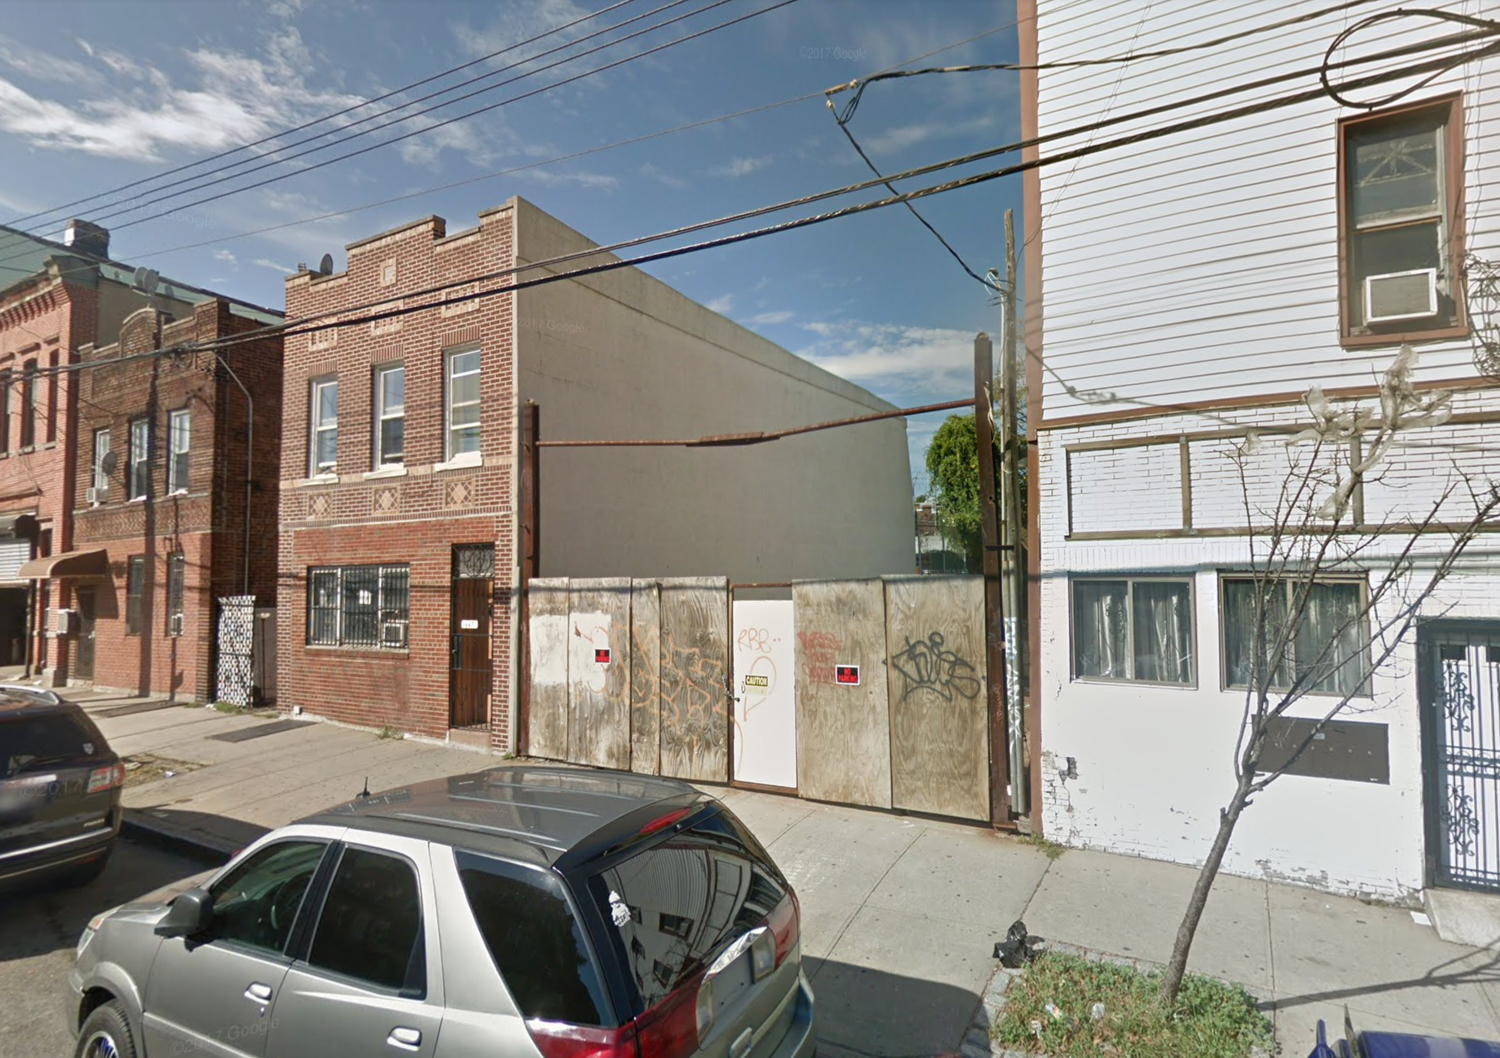 671 Liberty Avenue, via Google Maps